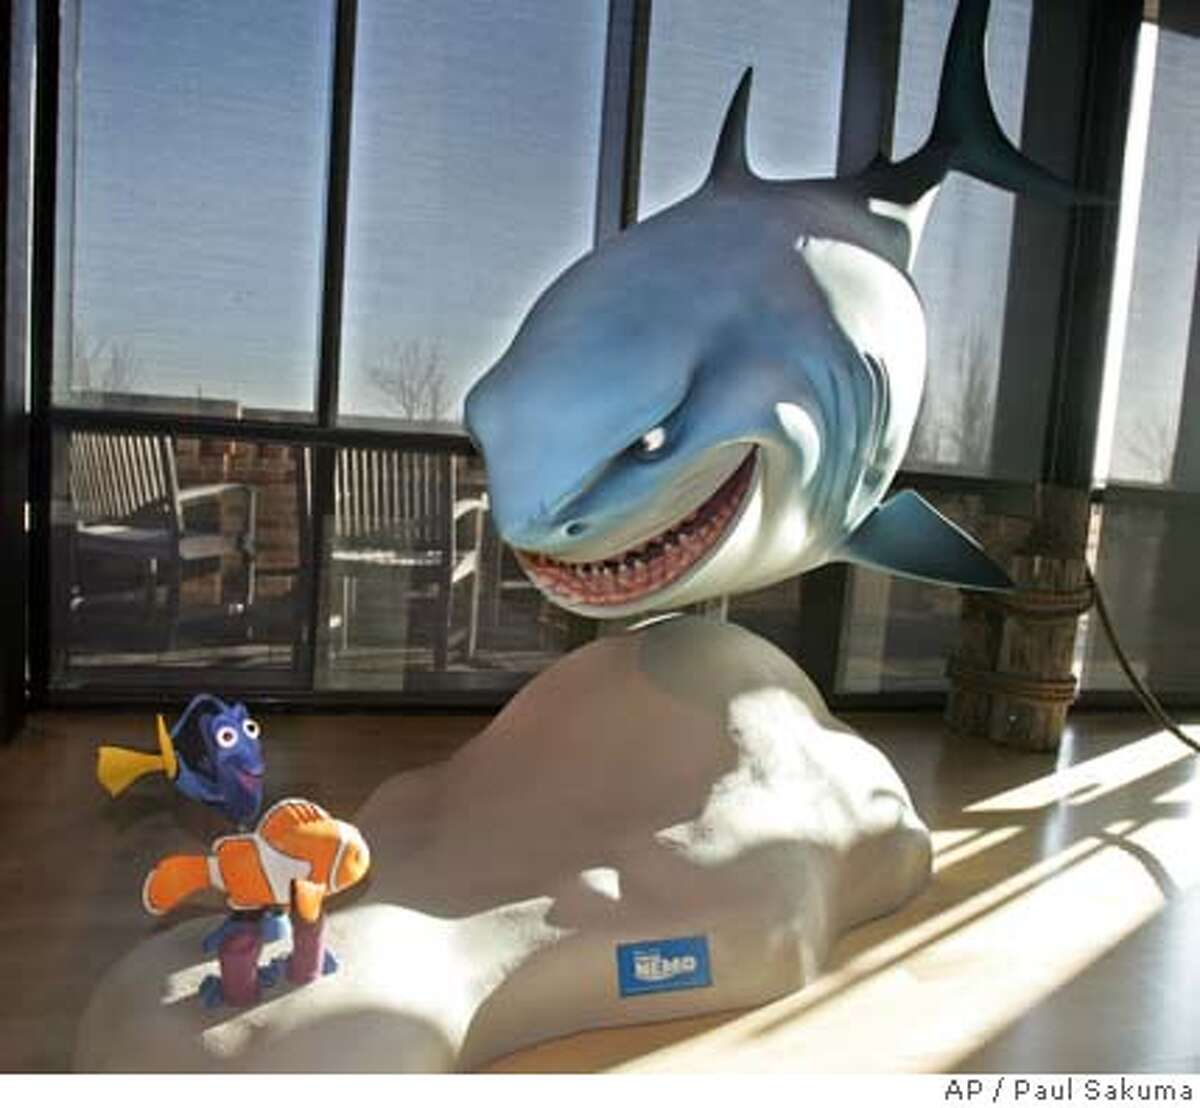 """Characters from the Pixar Animation Studios Inc. movie """"Finding Nemo"""" are shown in the lobby of Pixar headquarters in Emeryville, Calif., Tuesday, Jan. 24, 2006 after Walt Disney Co. announced it is buying longtime partner Pixar. (AP Photo/Paul Sakuma) Ran on: 01-26-2006 Finding Nemo characters from the Pixar Animation Studios movie decorate the lobby of Pixar headquarters in Emeryville."""